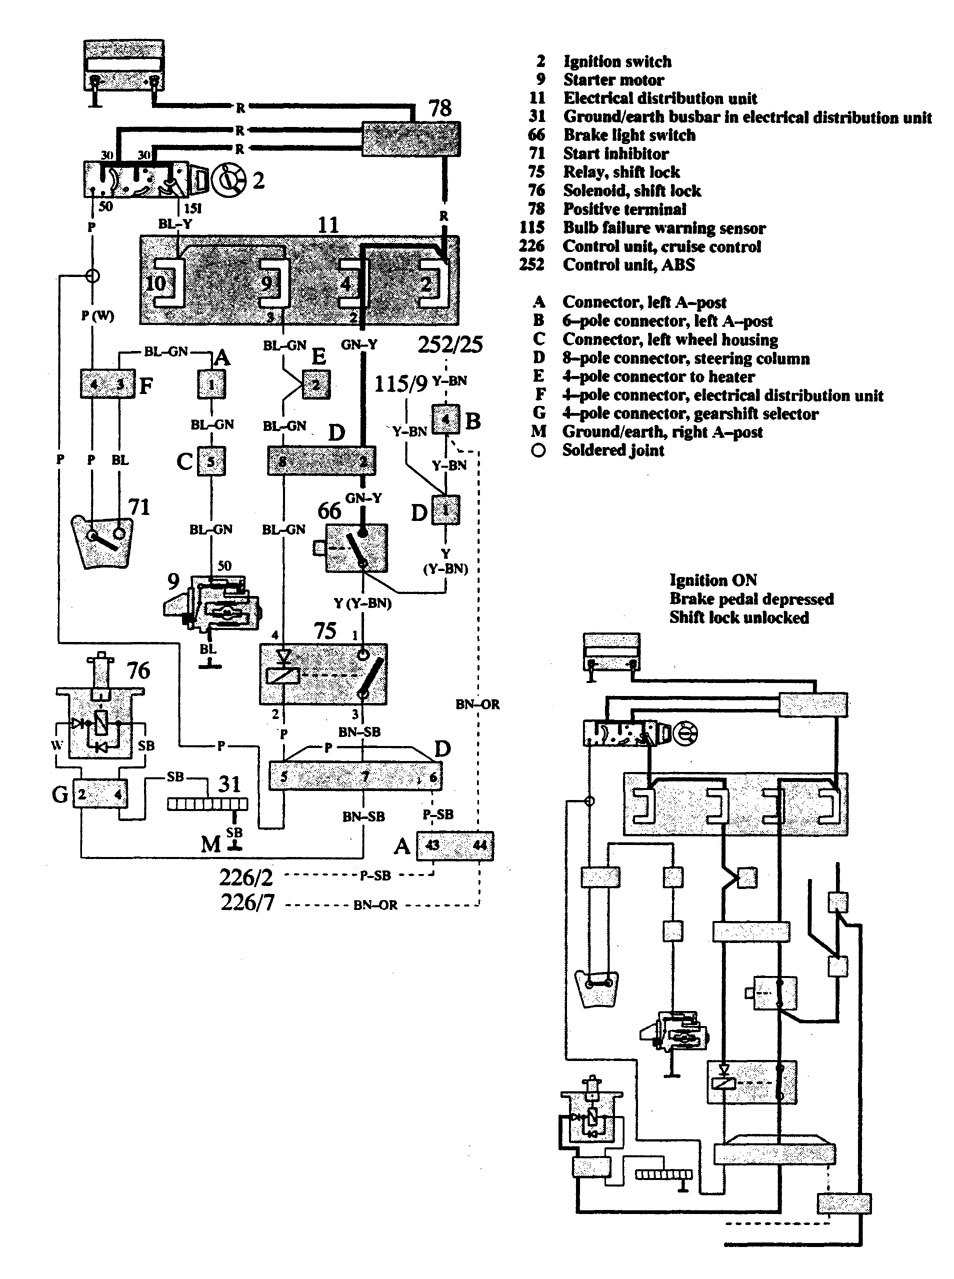 Wiring Diagram Volvo 940 Radio : Volvo radio wiring diagram imageresizertool